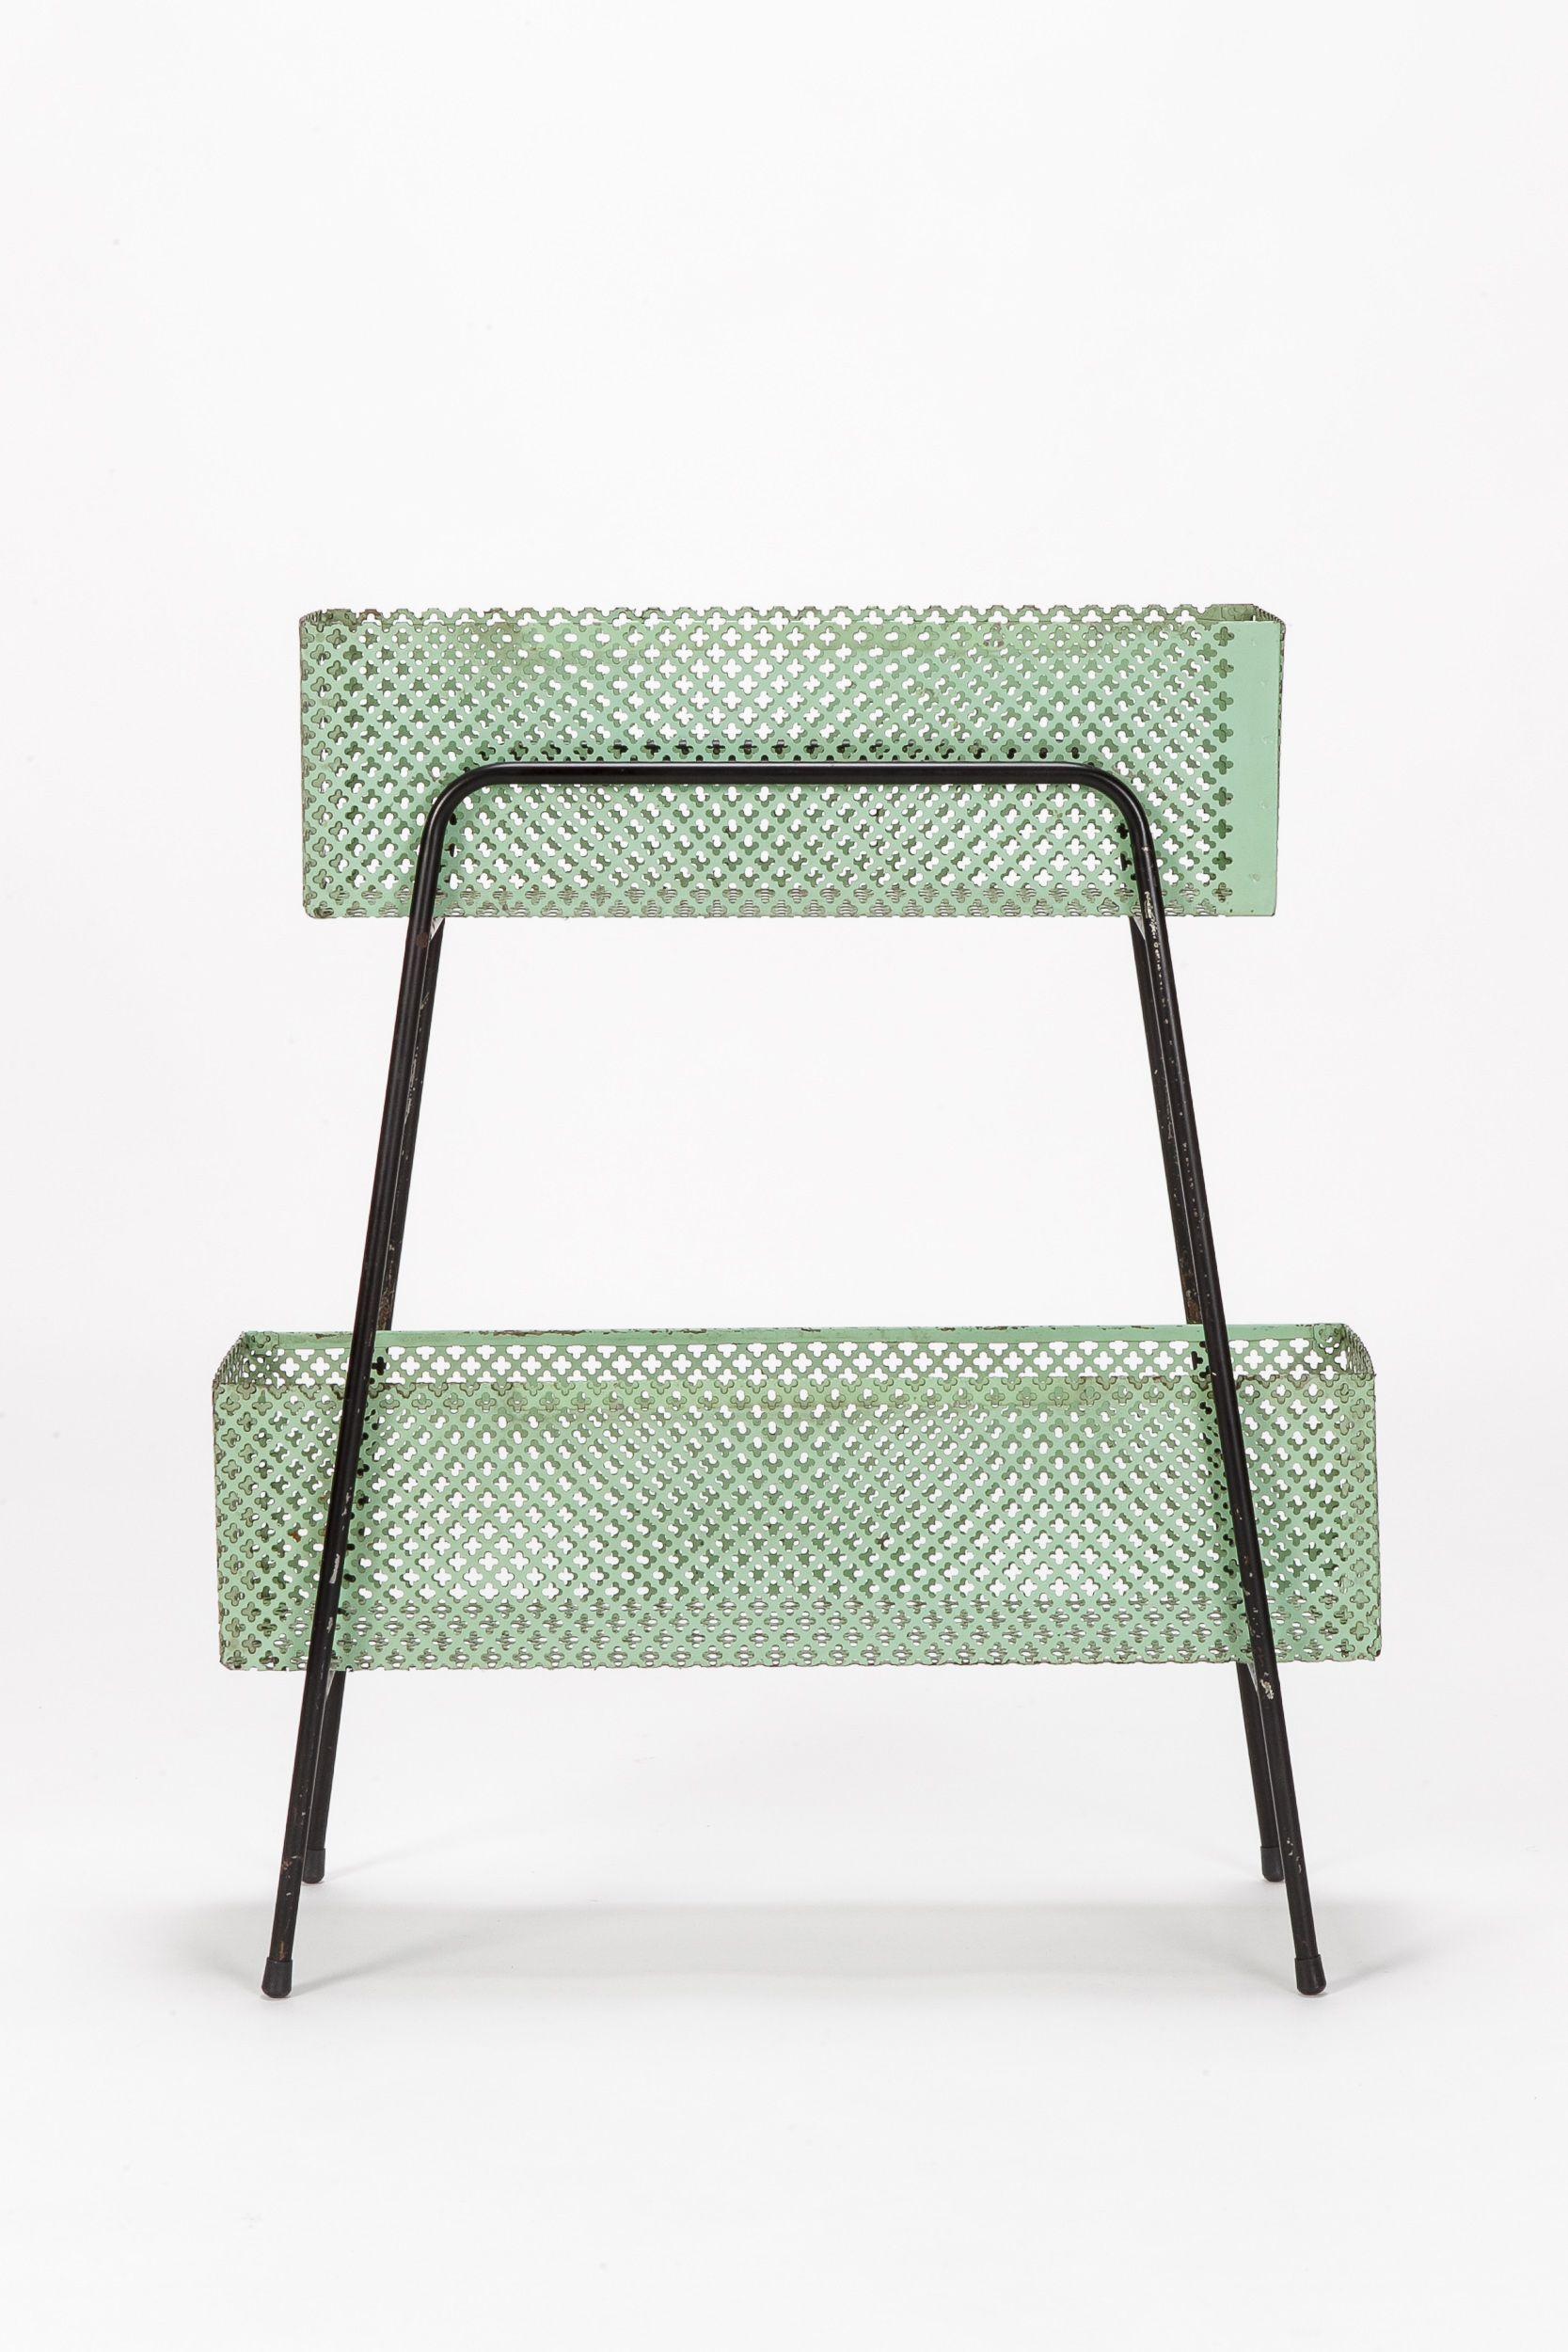 MATHIEU MATEGOT, PERFORATED PLANT STAND. | OBJECT | Pinterest ...